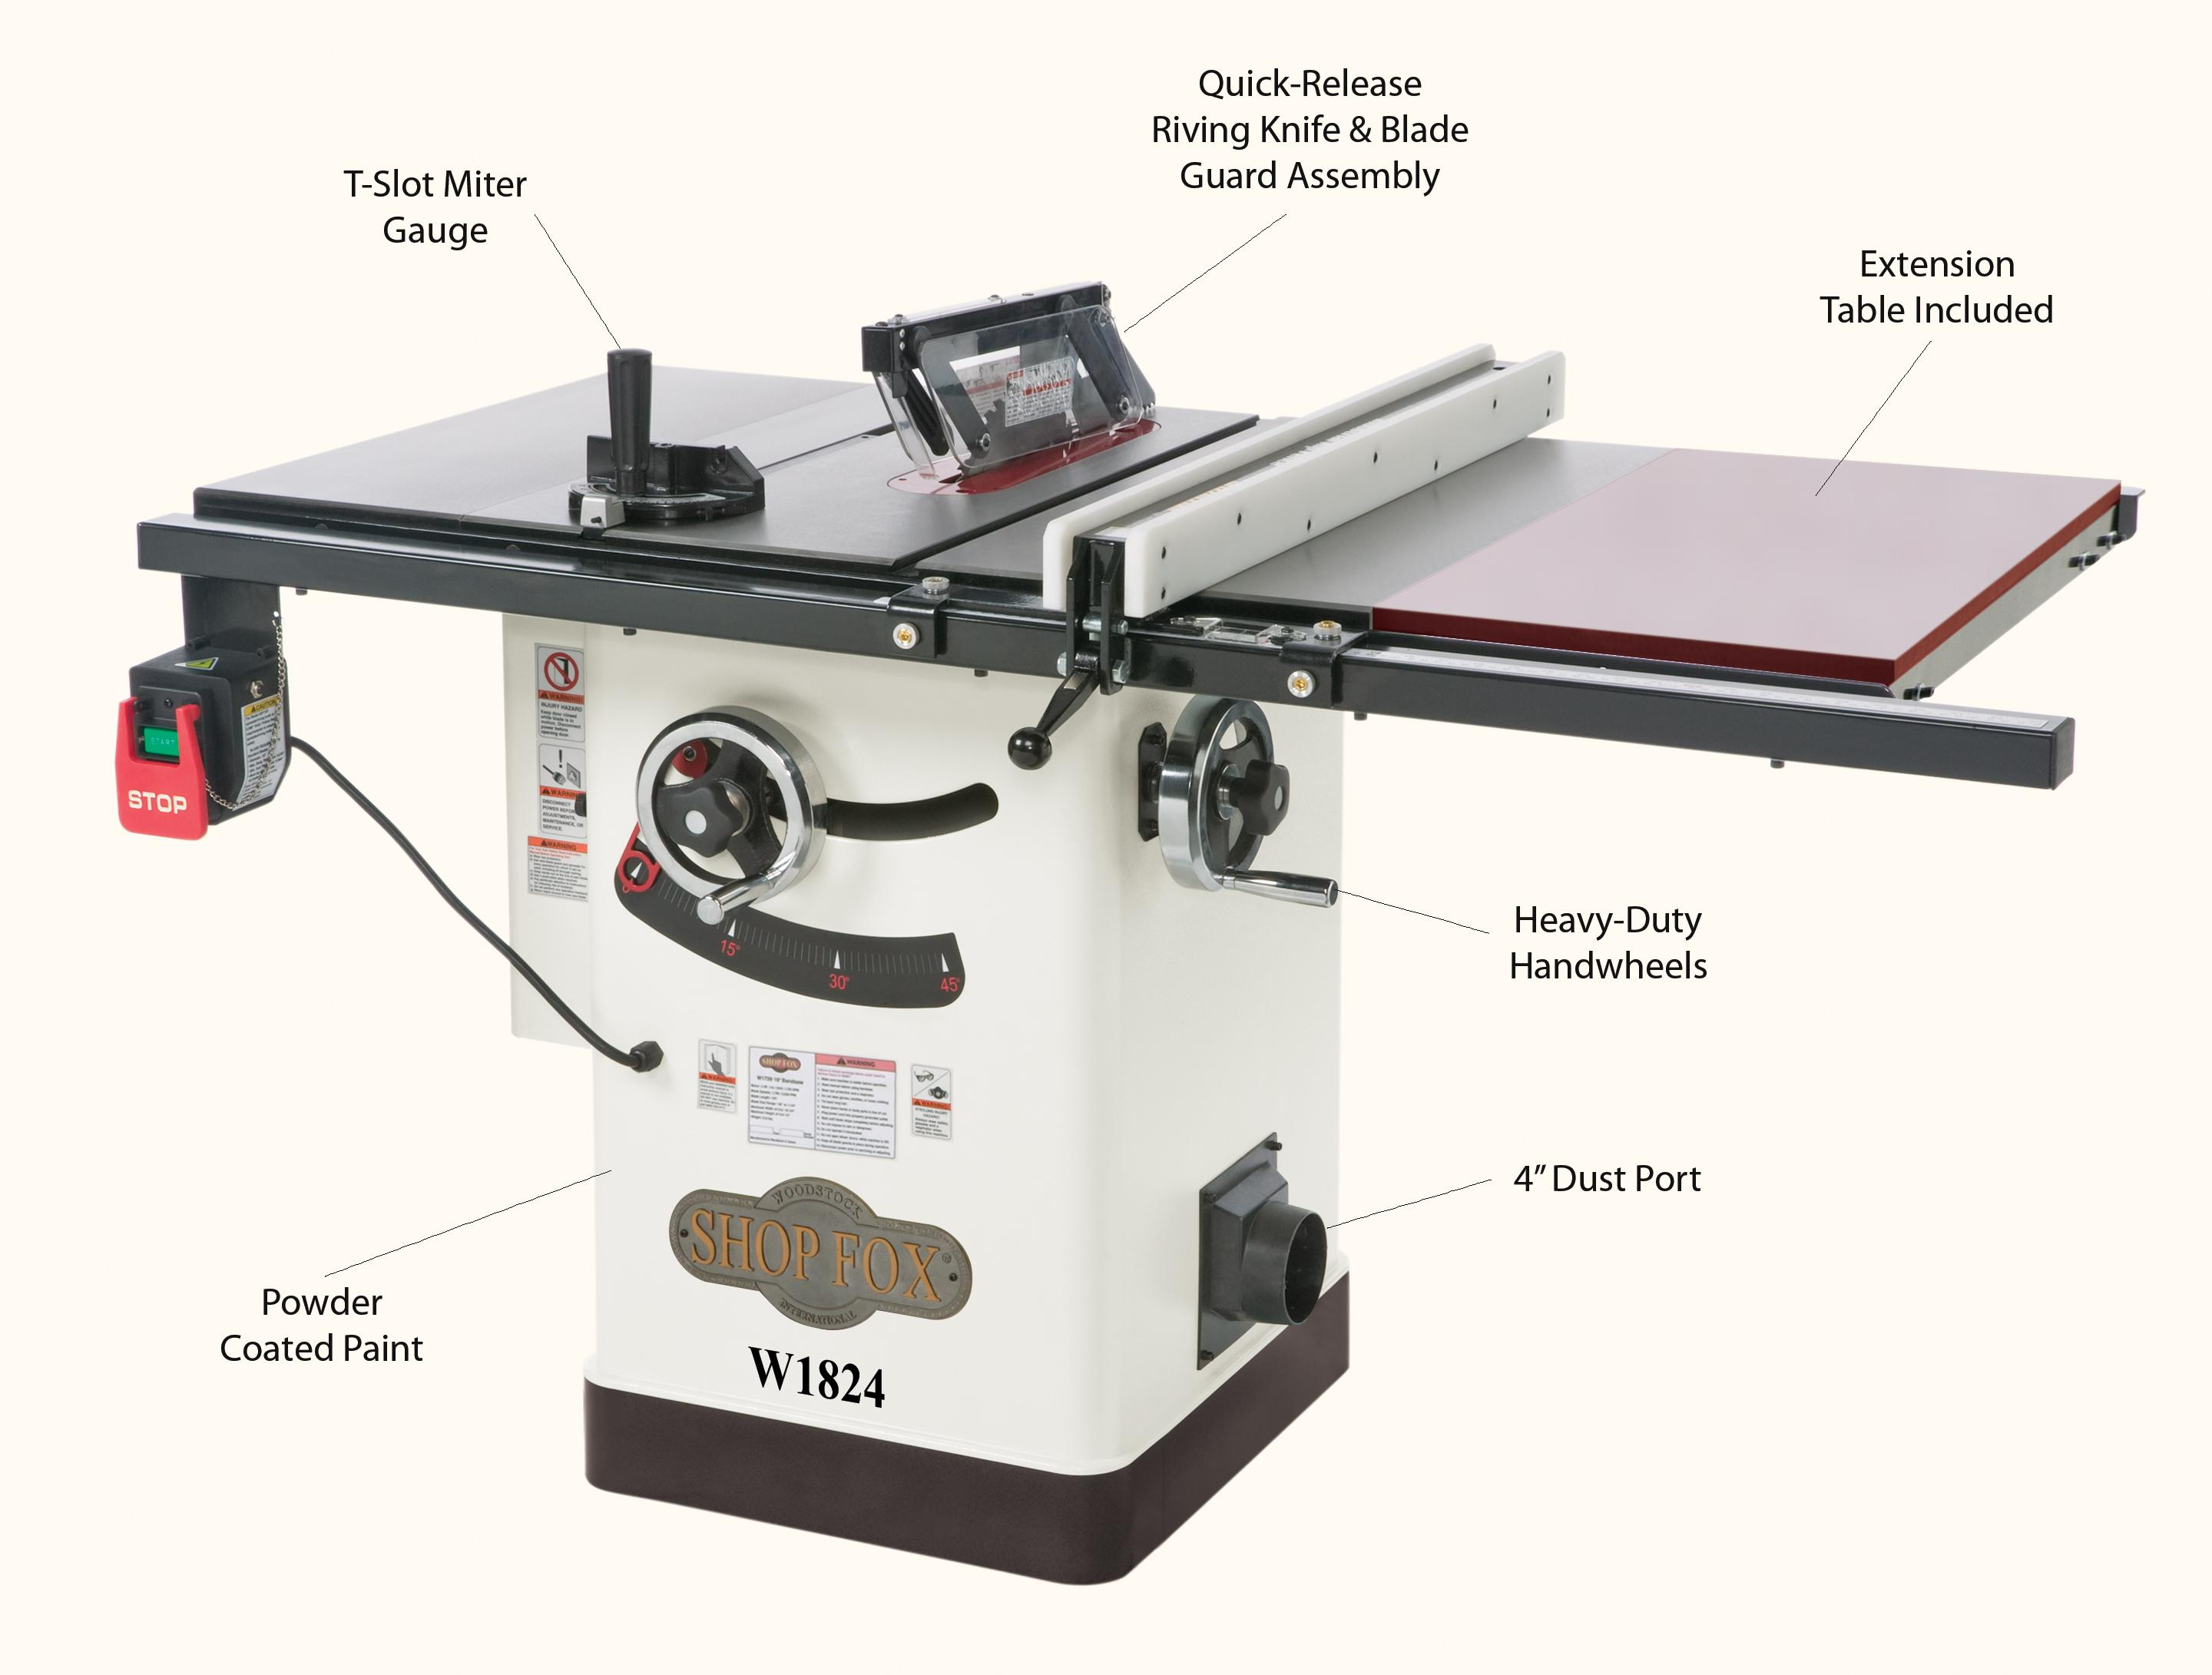 Shop fox w1824 hybrid table saw with extension table power table view larger keyboard keysfo Gallery